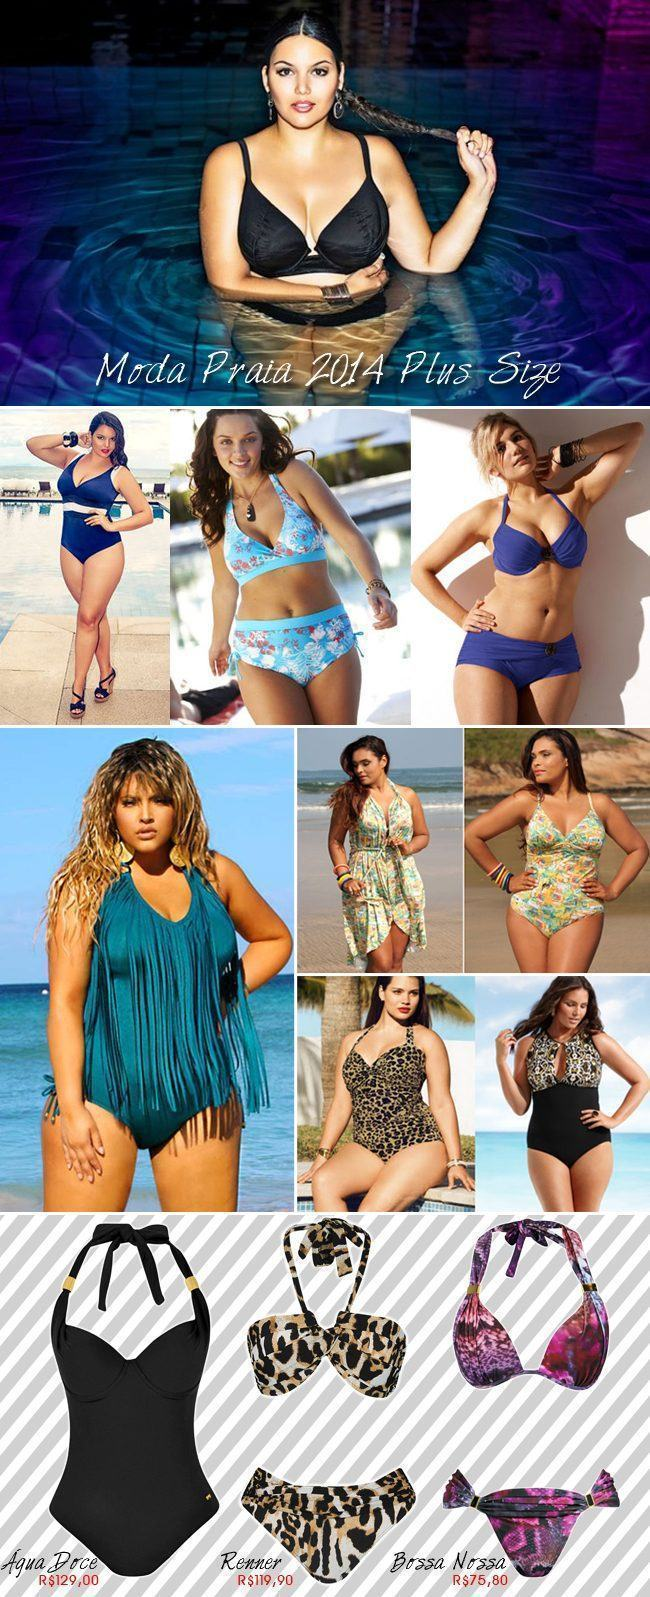 Moda praia 2014 Plus Size copy